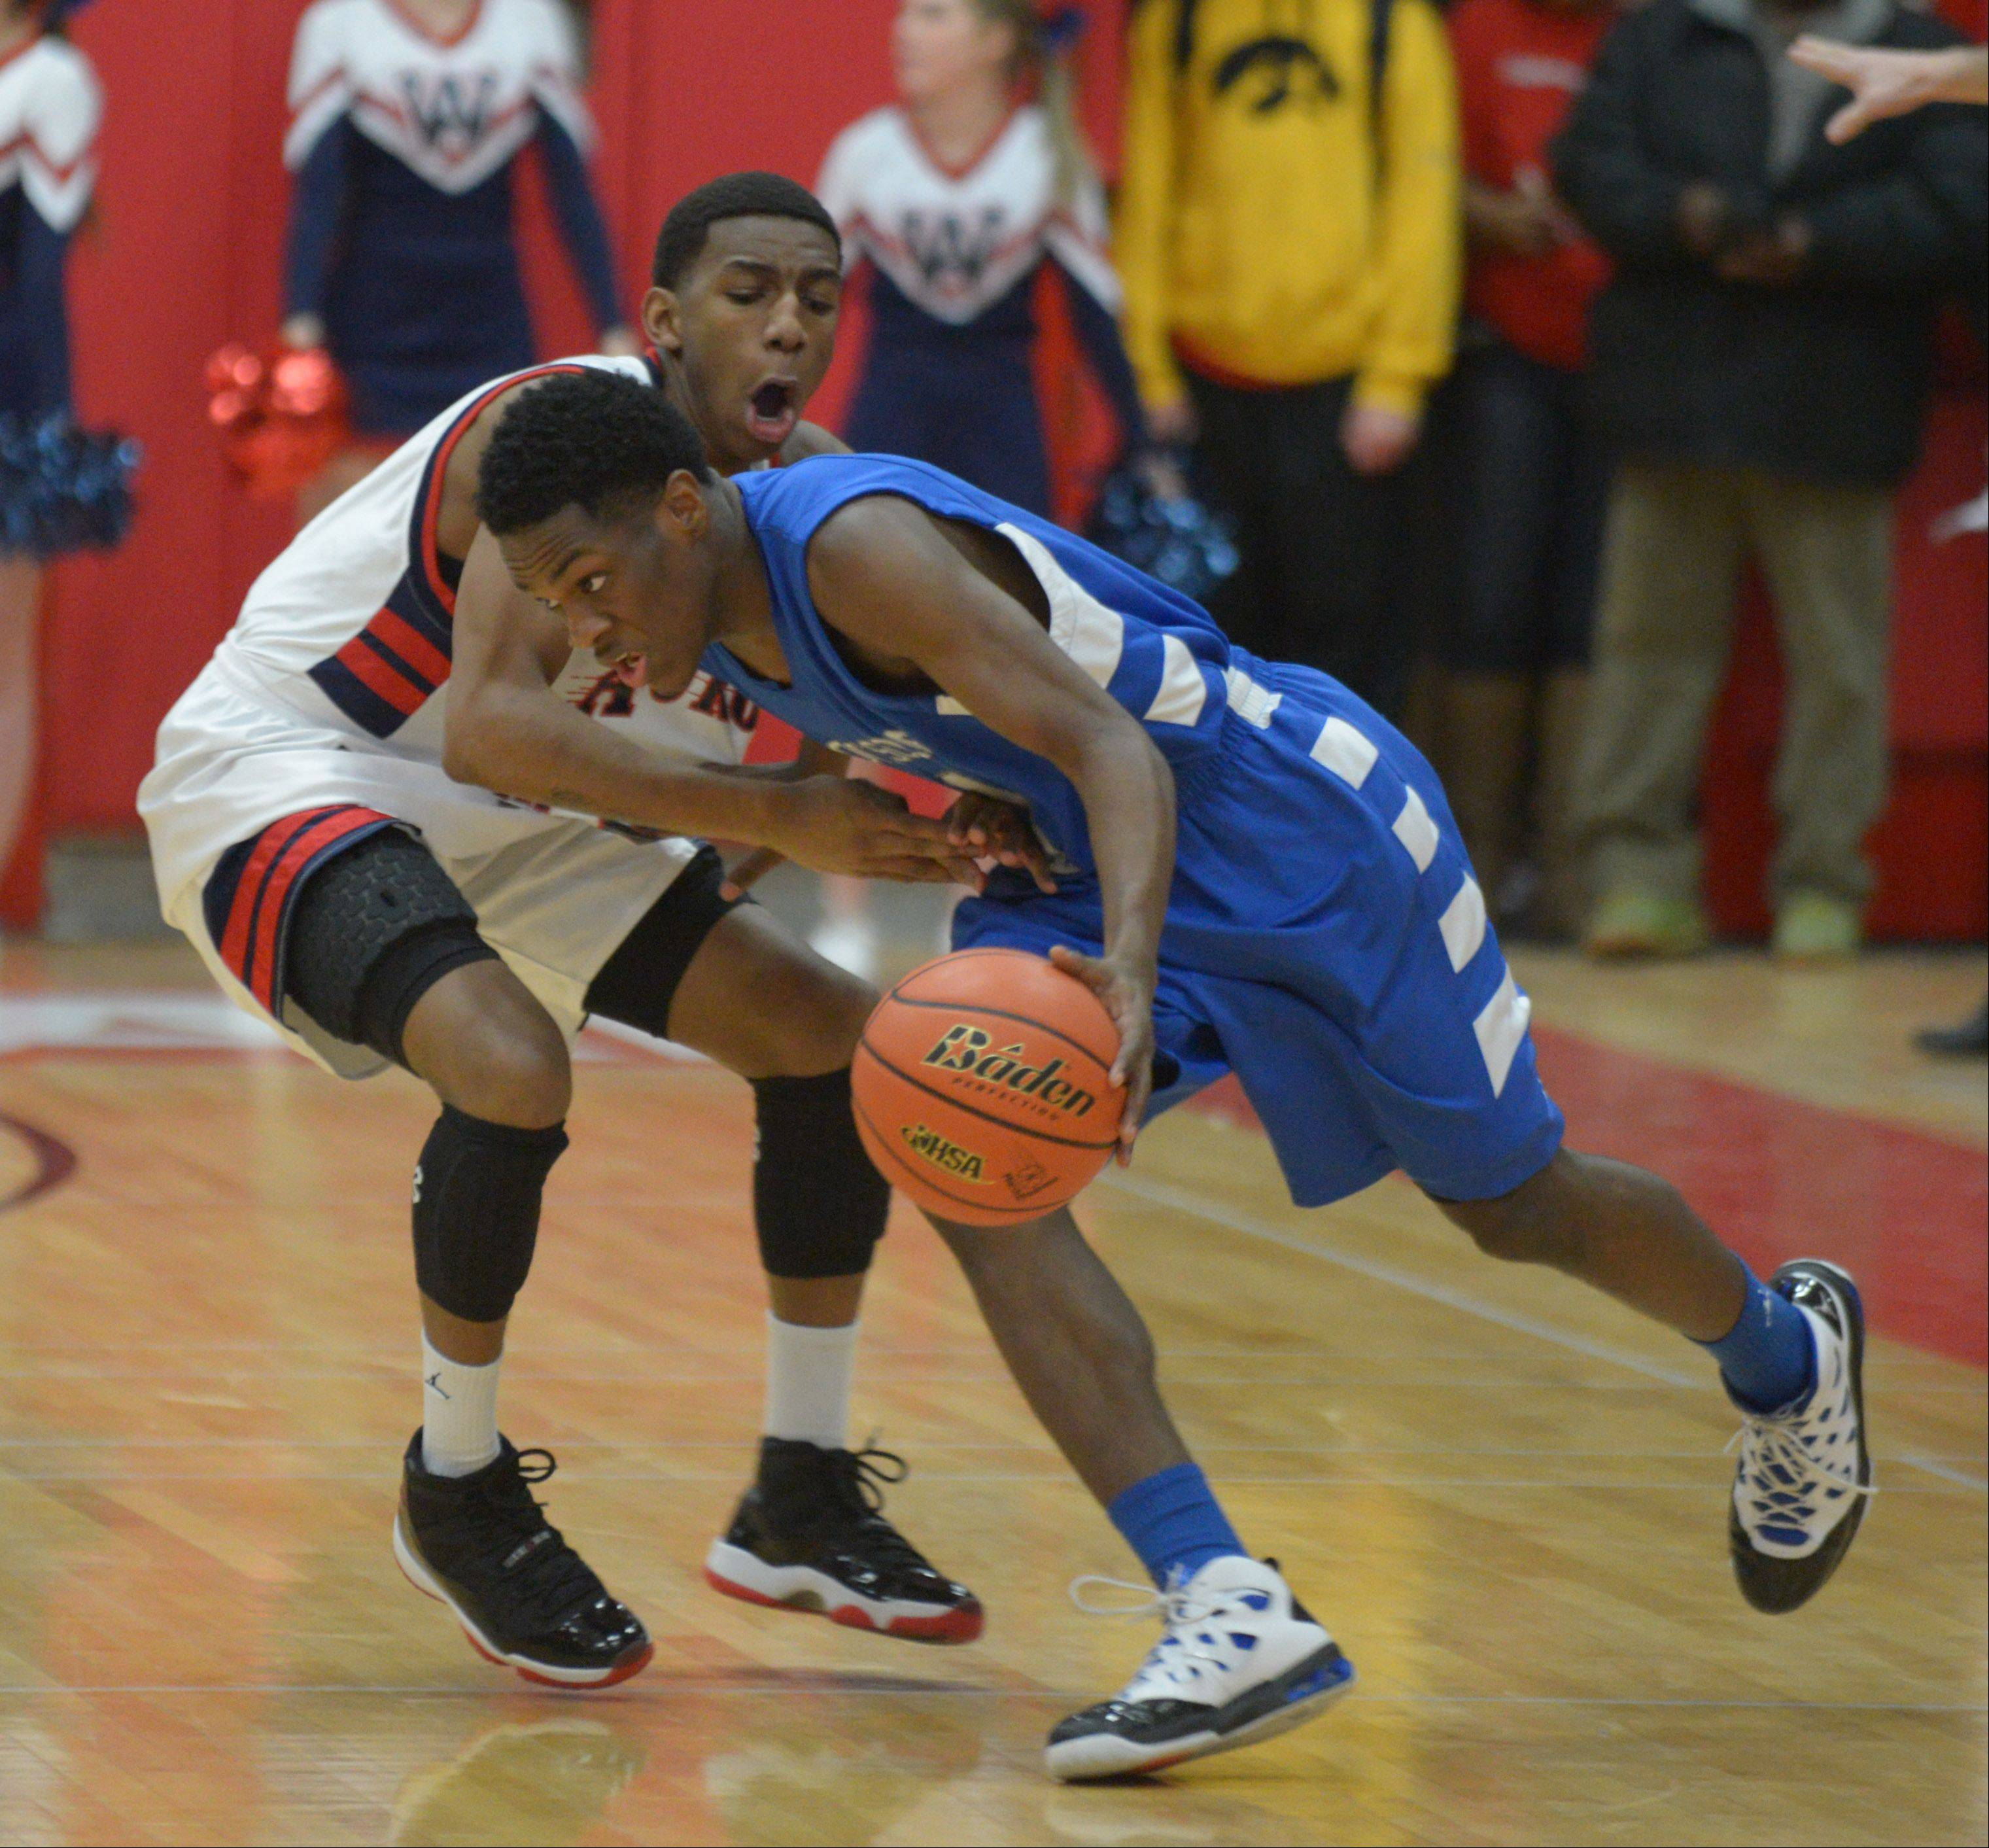 Jayquan Lee of West Aurora works Paris Lee of Proviso East during the West Aurora vs. Proviso East Class 4A Hinsdale Central boys basketball super sectional Tuesday.